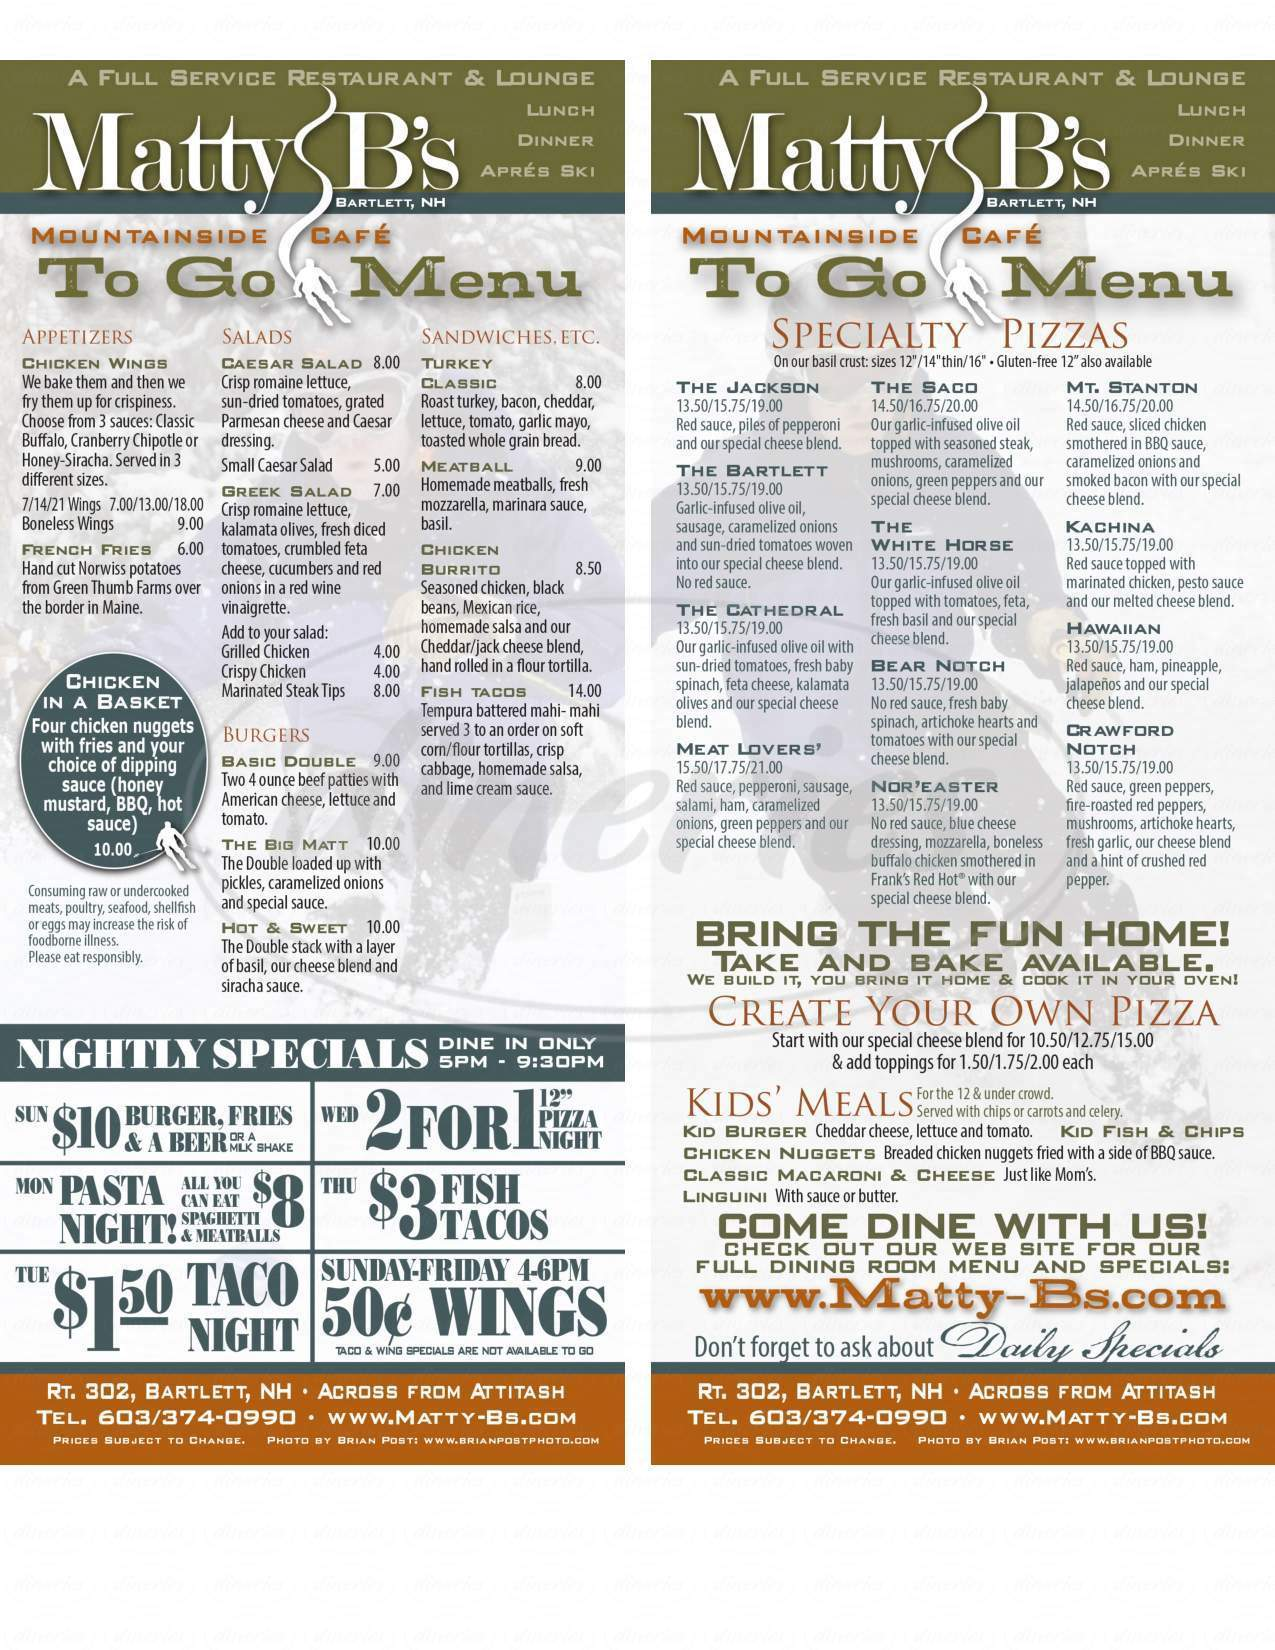 menu for Matty B's Mountainside Cafe